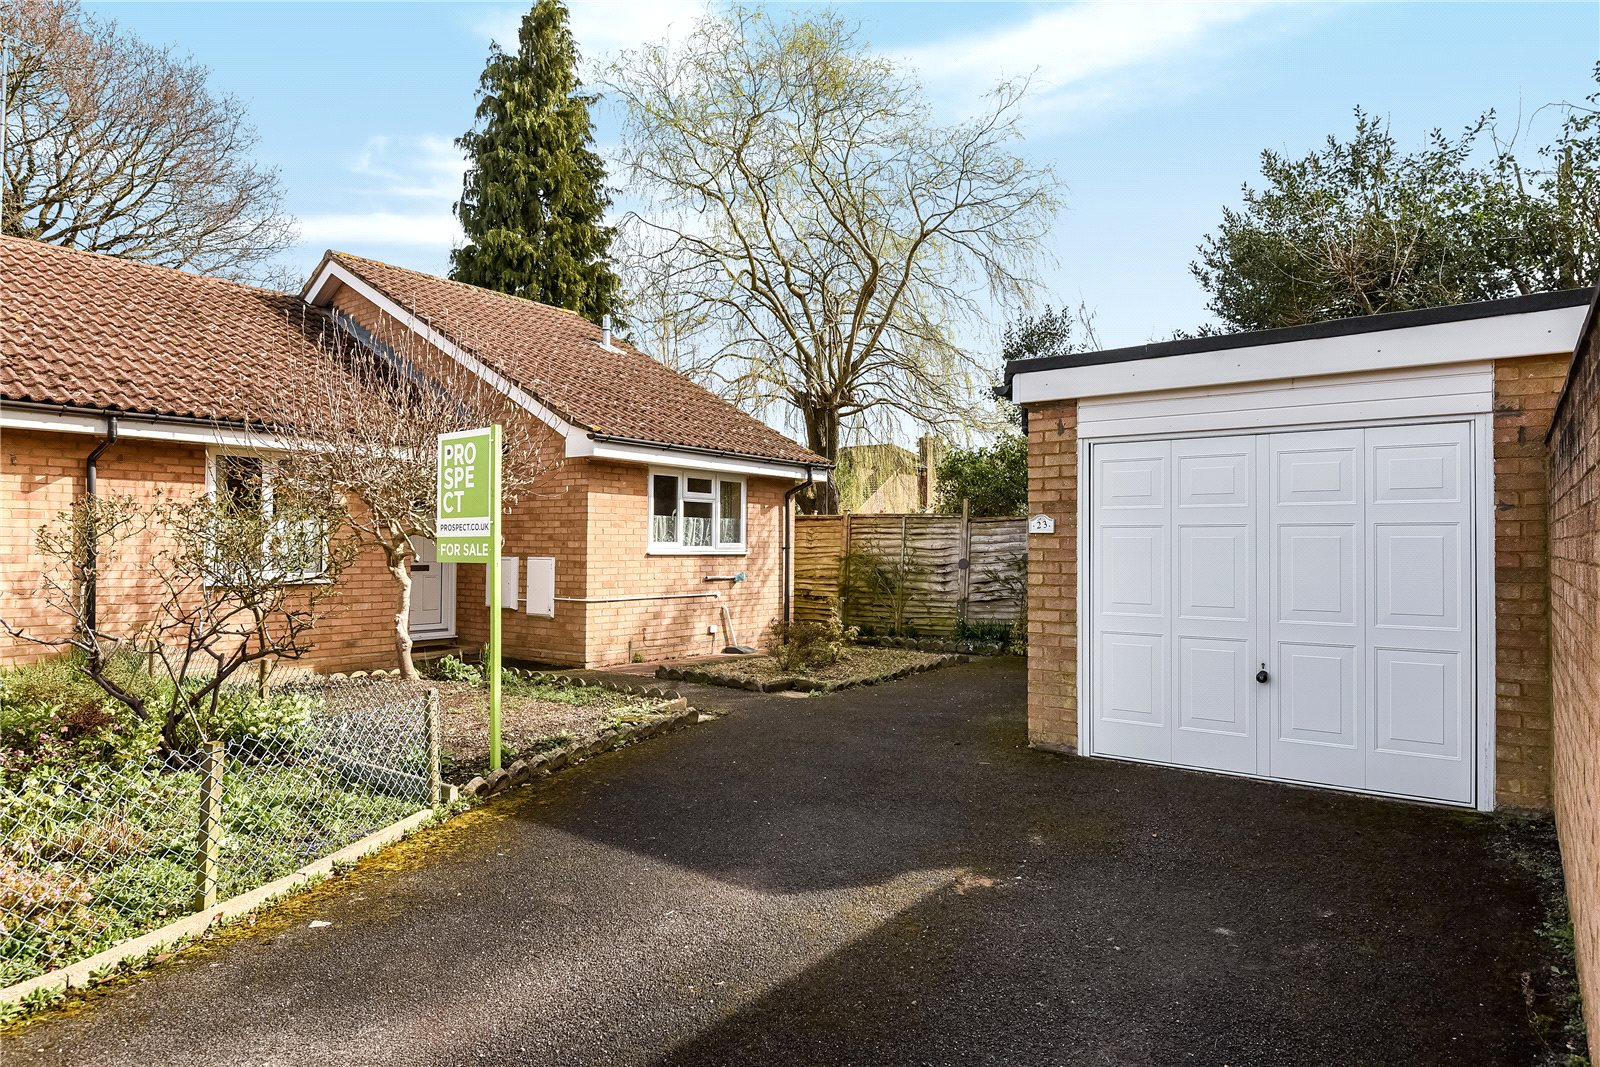 2 Bedrooms Semi Detached Bungalow for sale in Inverness Way, College Town, Sandhurst, Berkshire, GU47